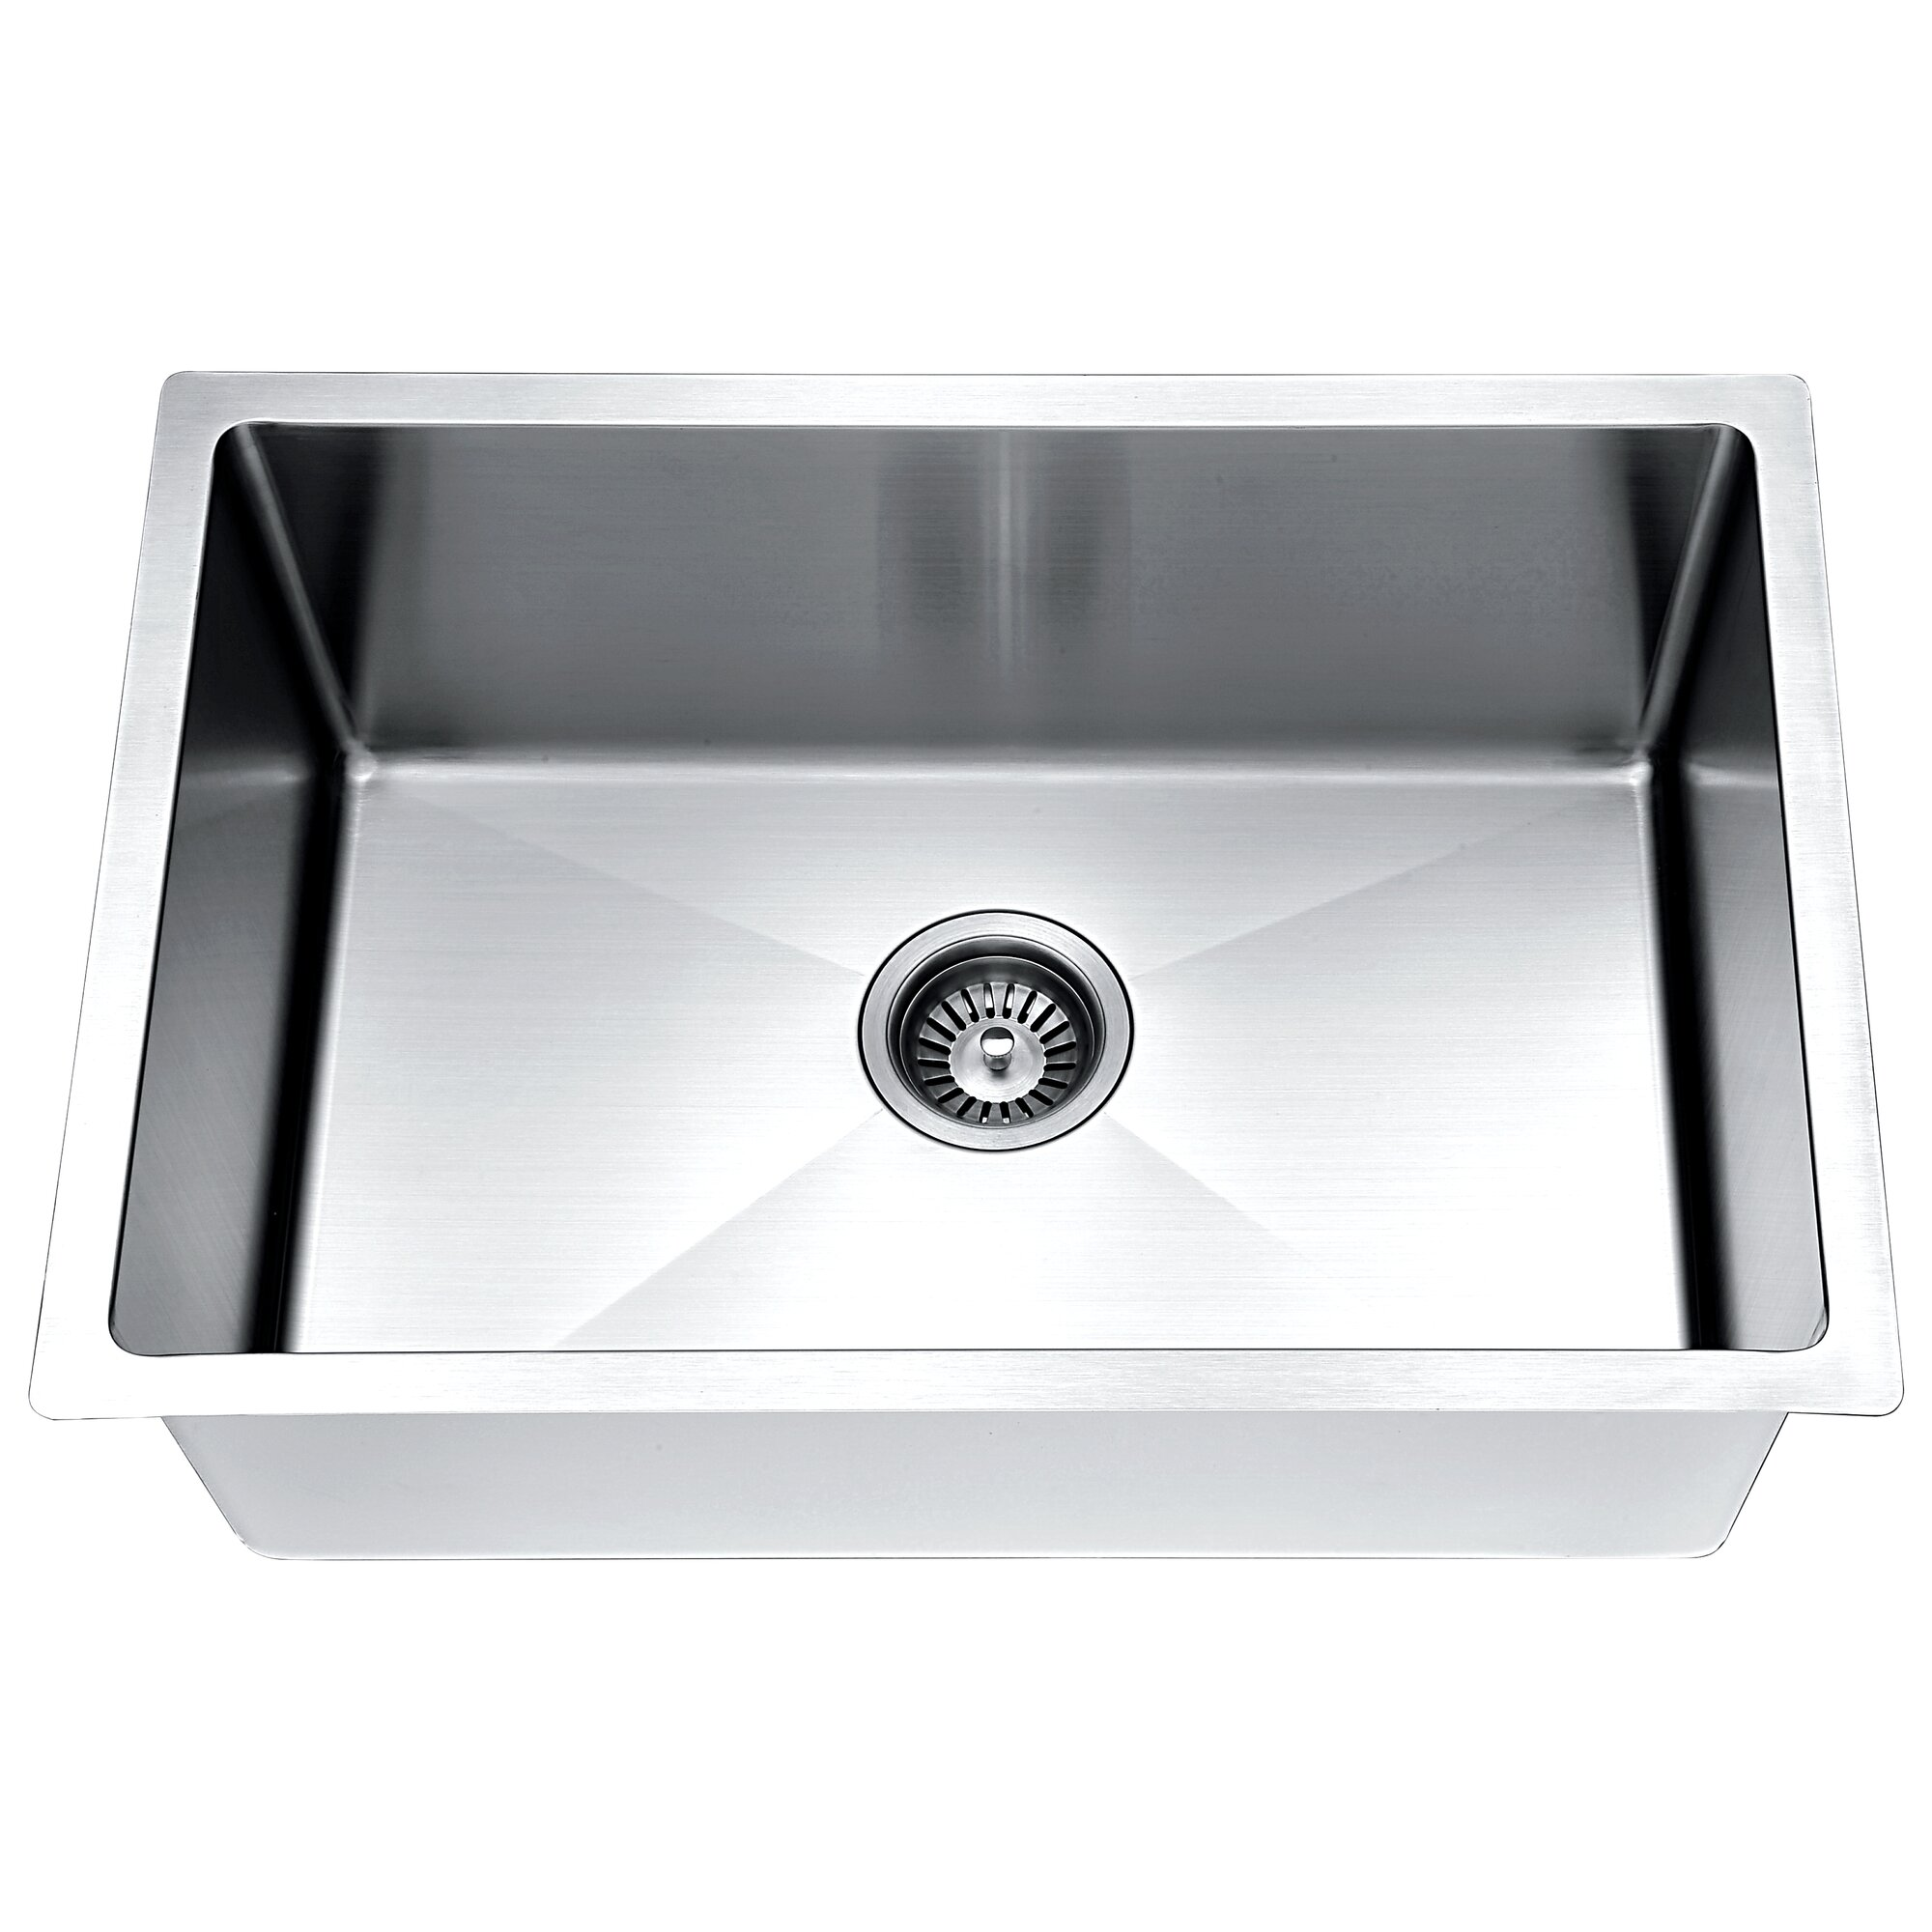 26 x 18 single bowl kitchen sink - White Single Basin Kitchen Sink